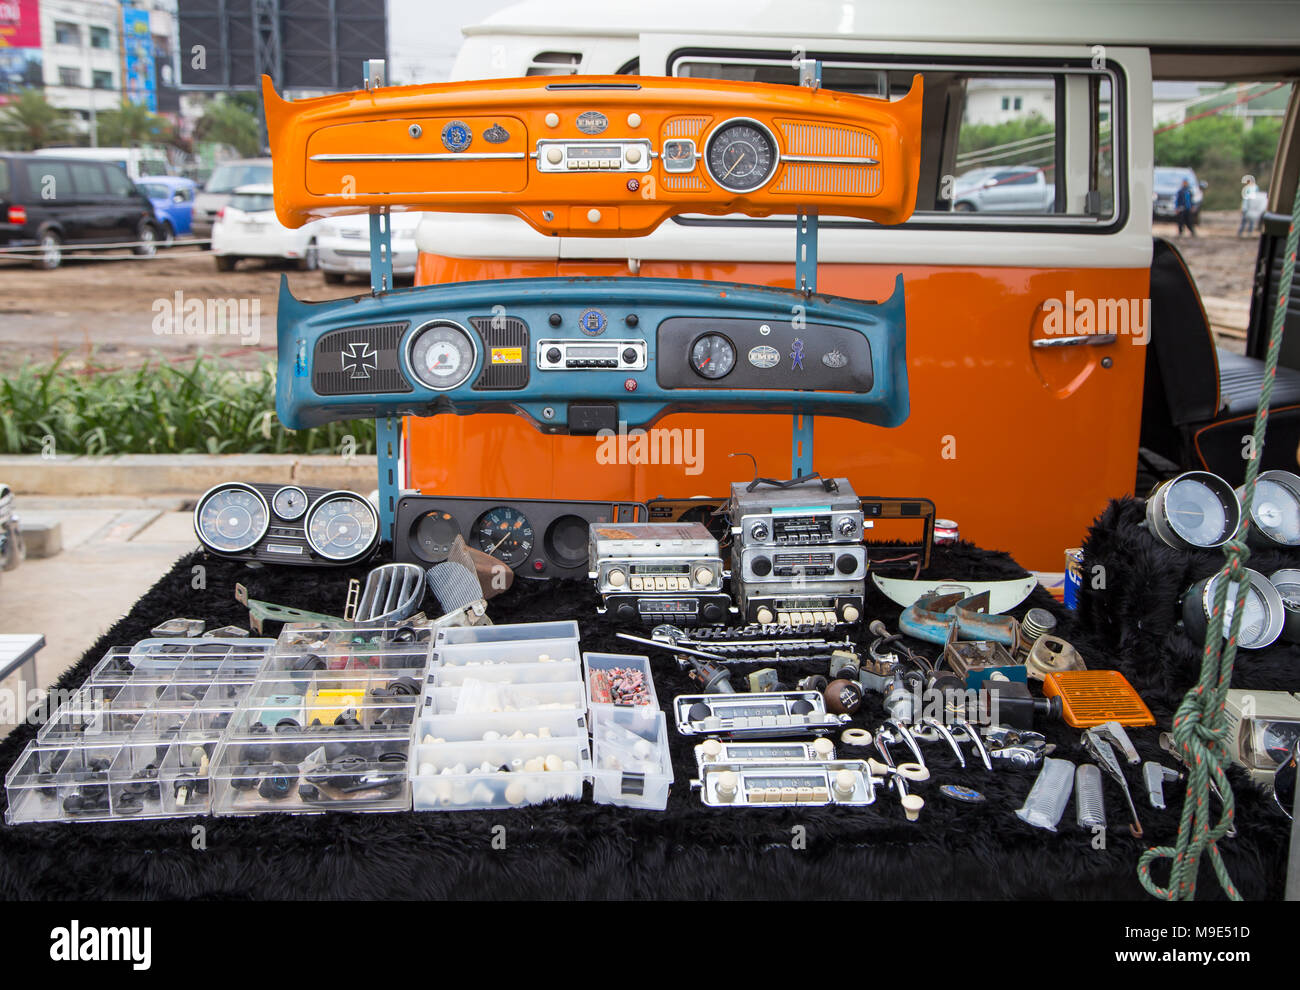 Spare Parts Store Stock Photos & Spare Parts Store Stock Images - Alamy